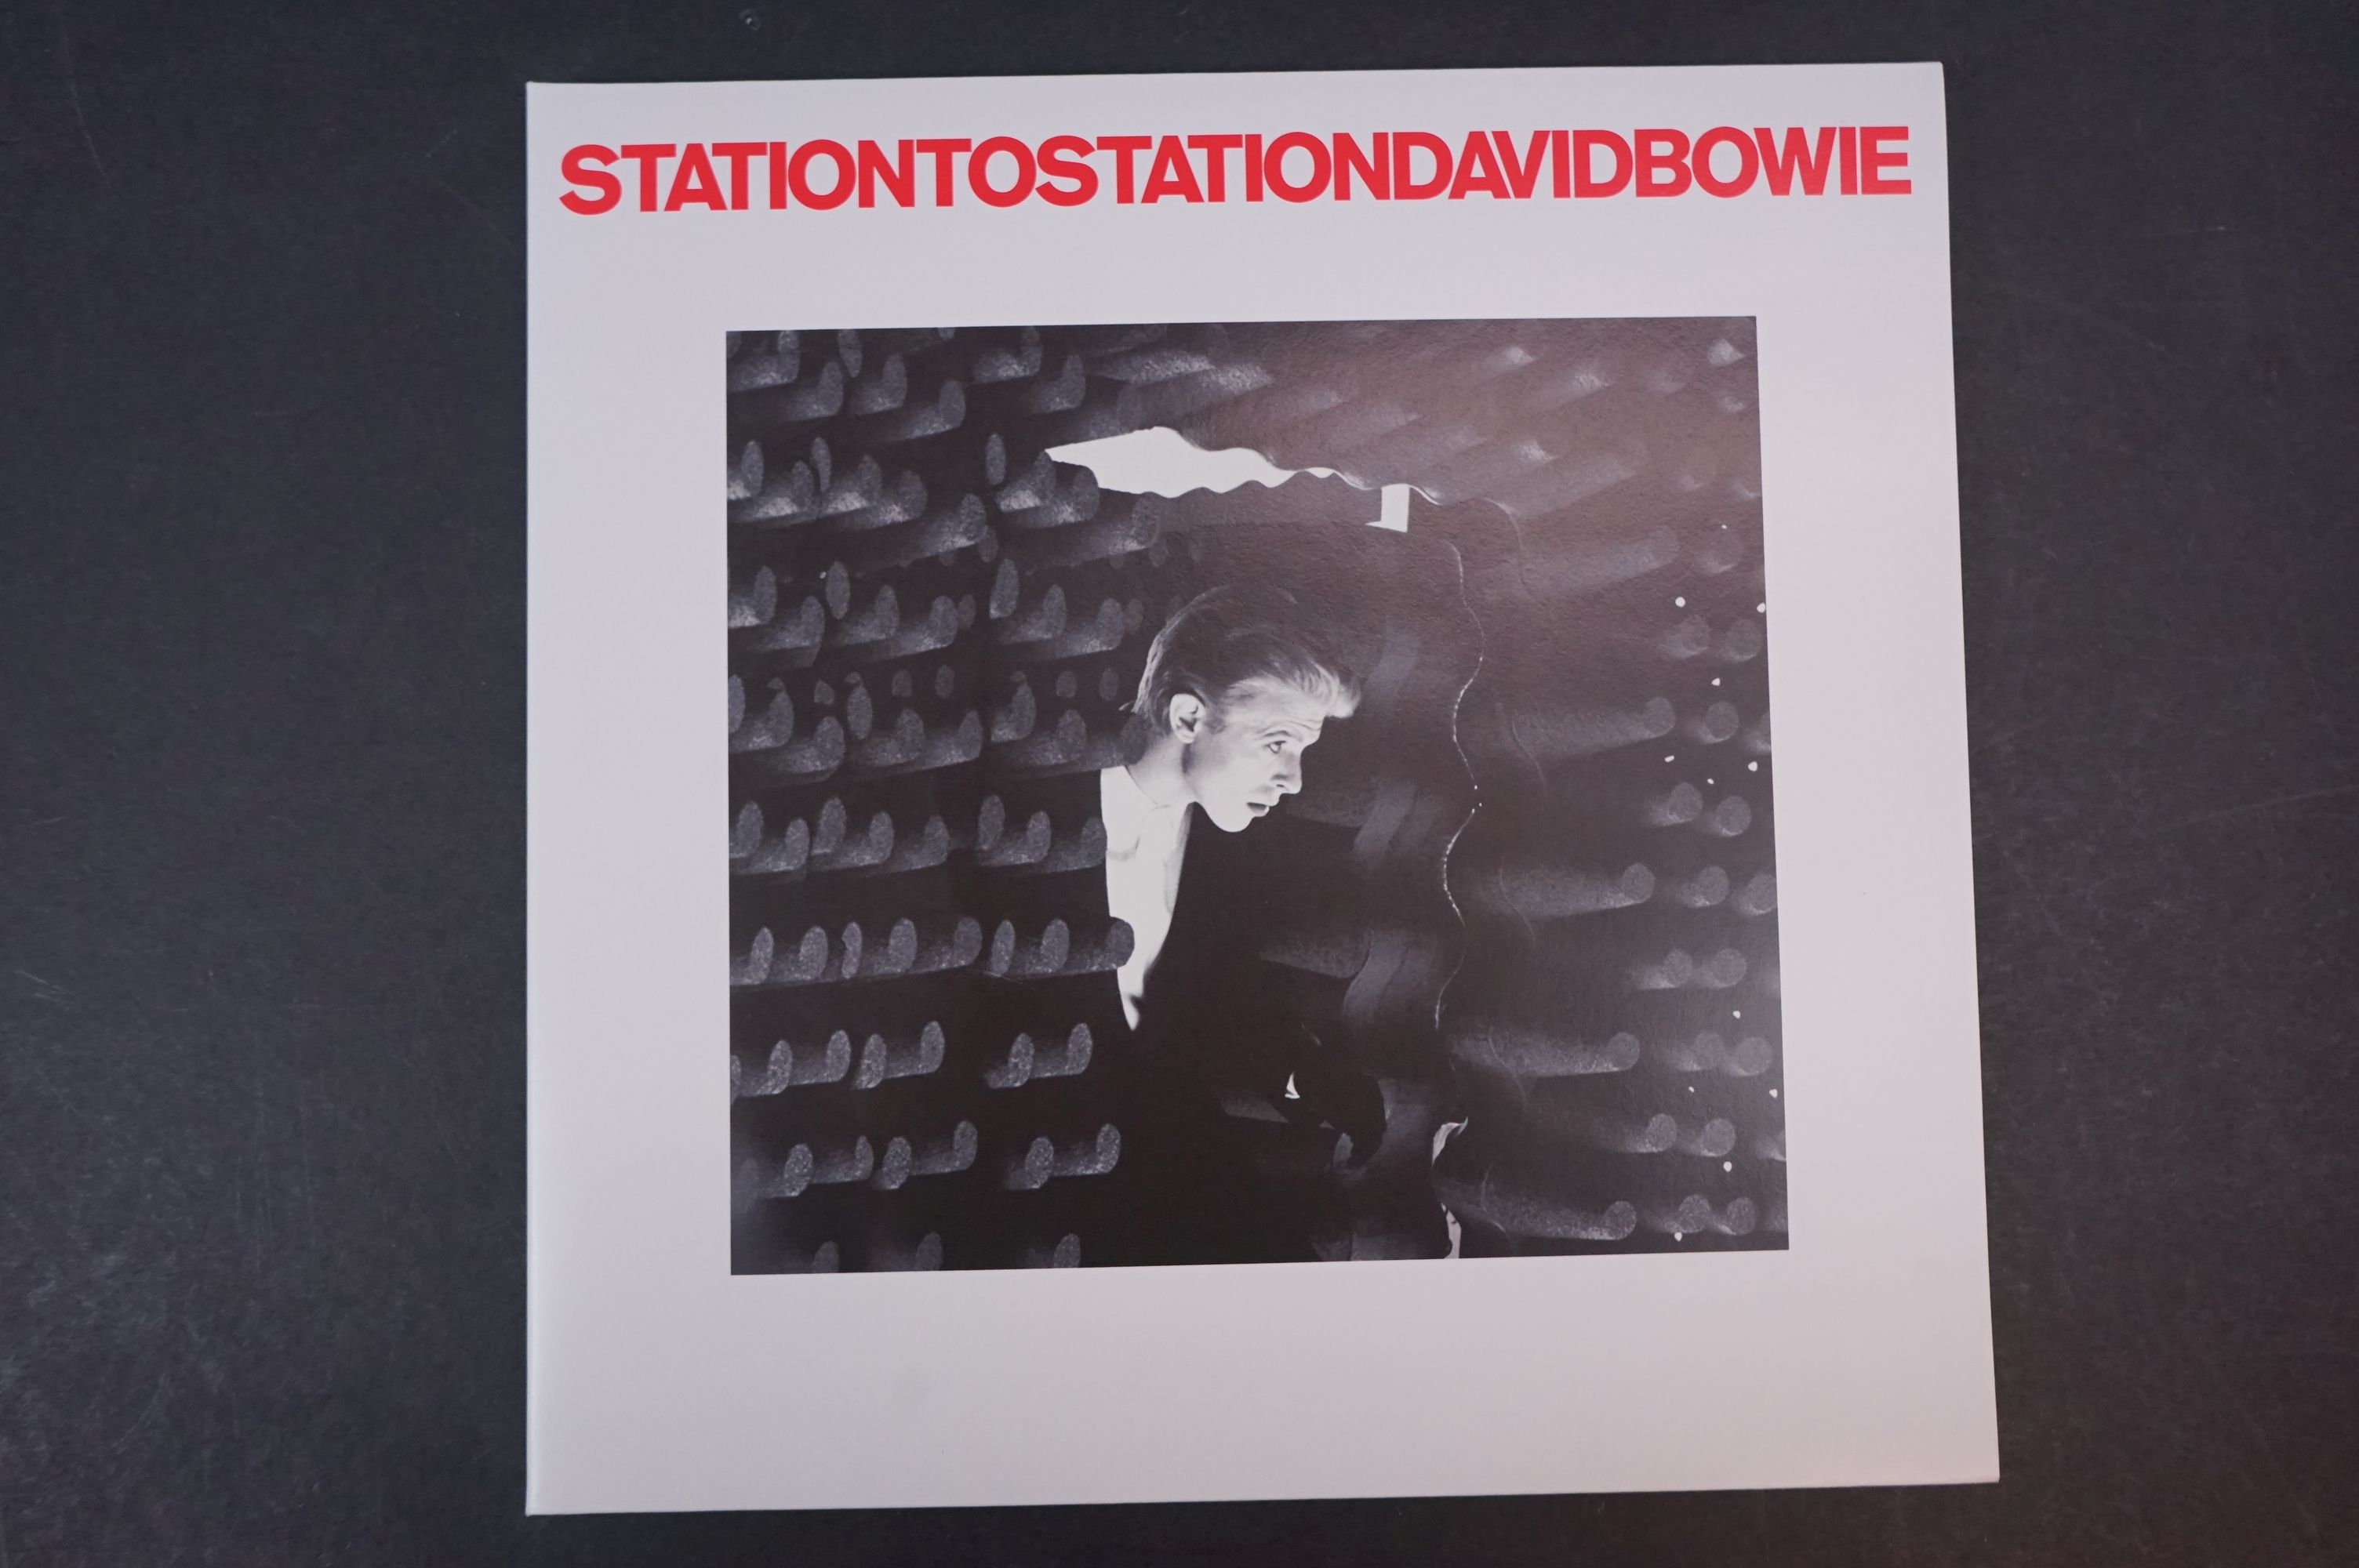 Vinyl / CD / DVD - David Bowie Station To Station Deluxe Box Set, vg - Image 6 of 15